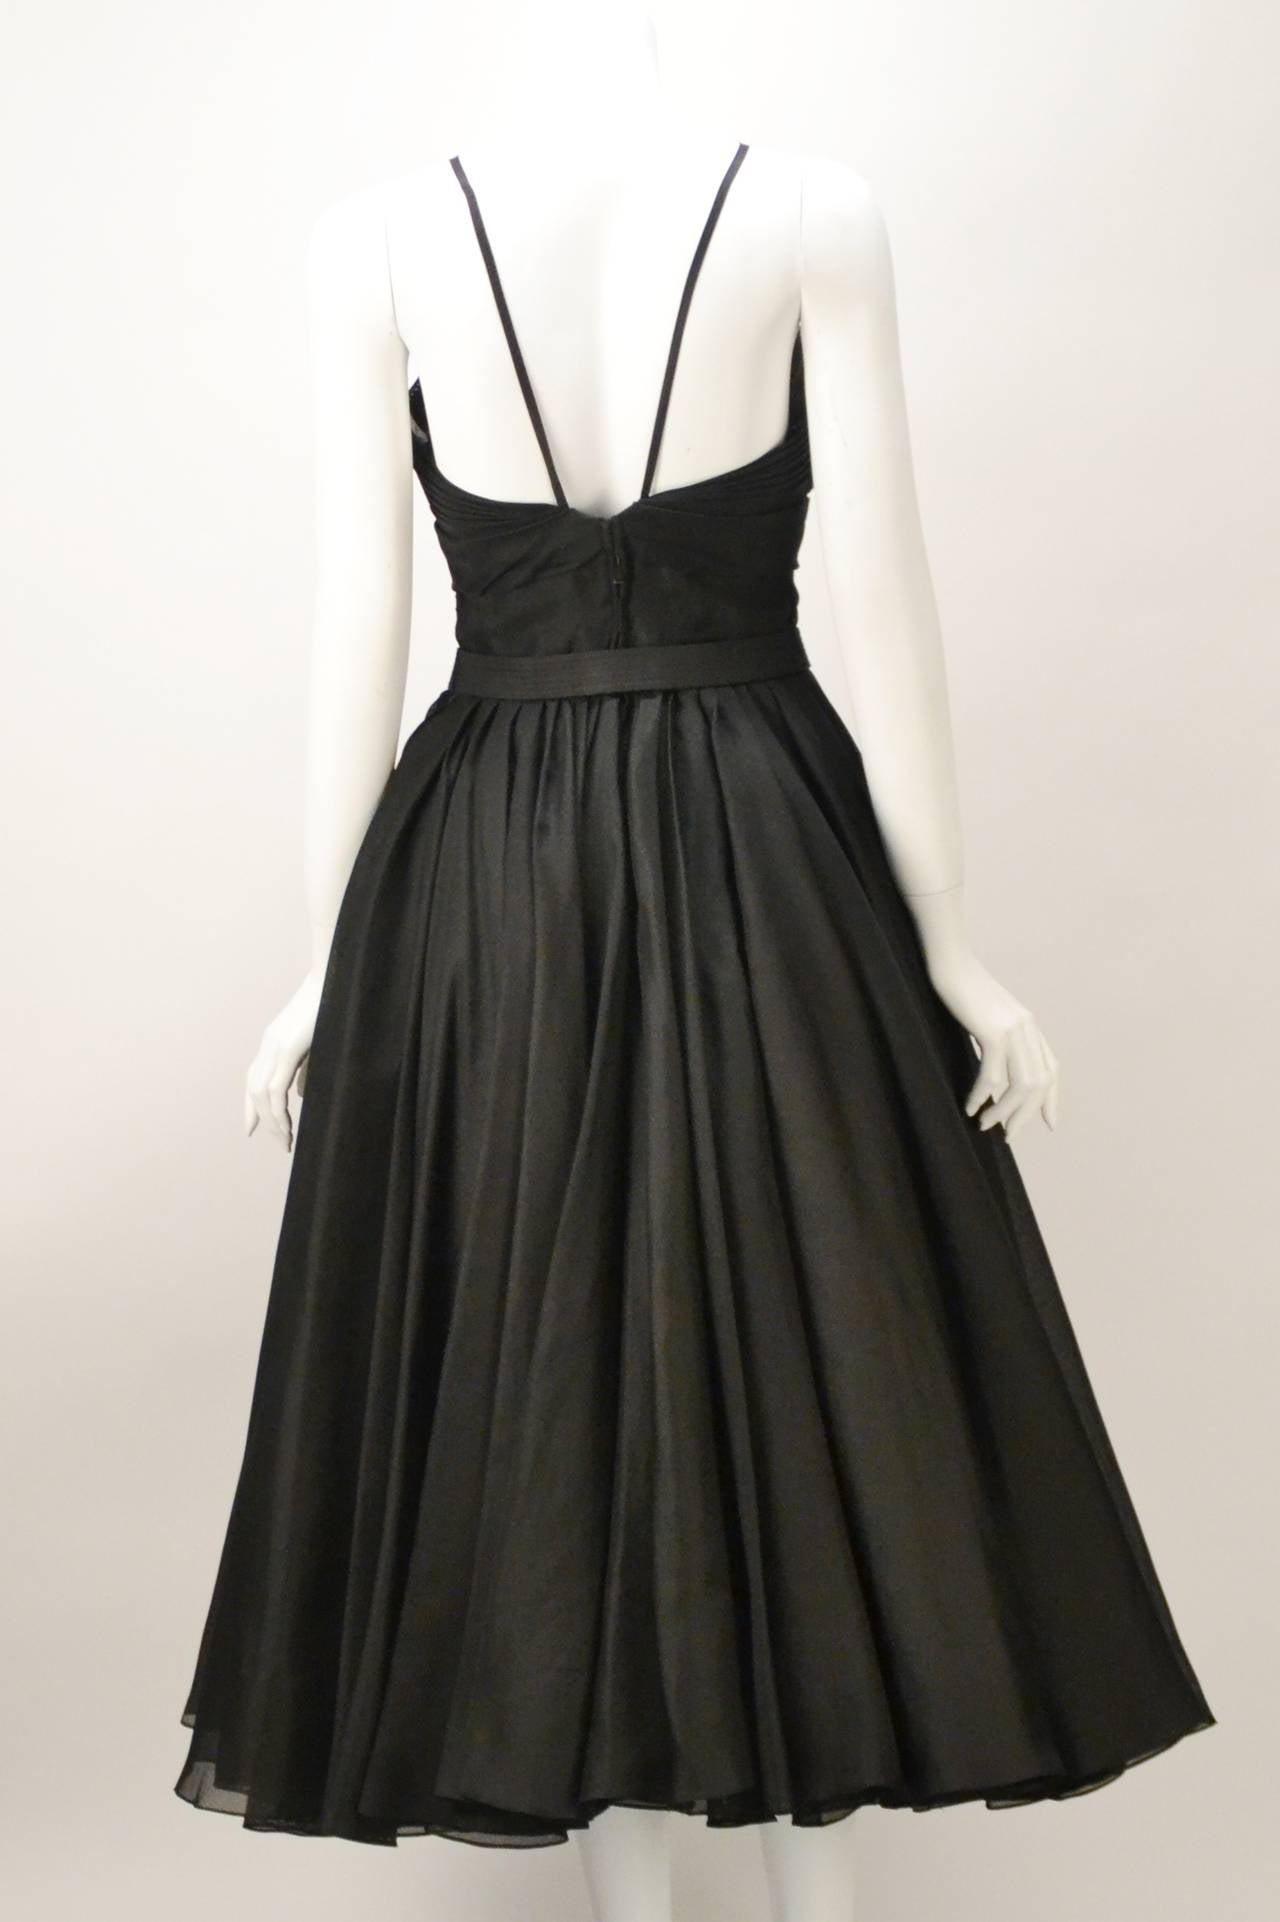 Rare 1950s Traina Norell Black Halter Day Dress For Sale